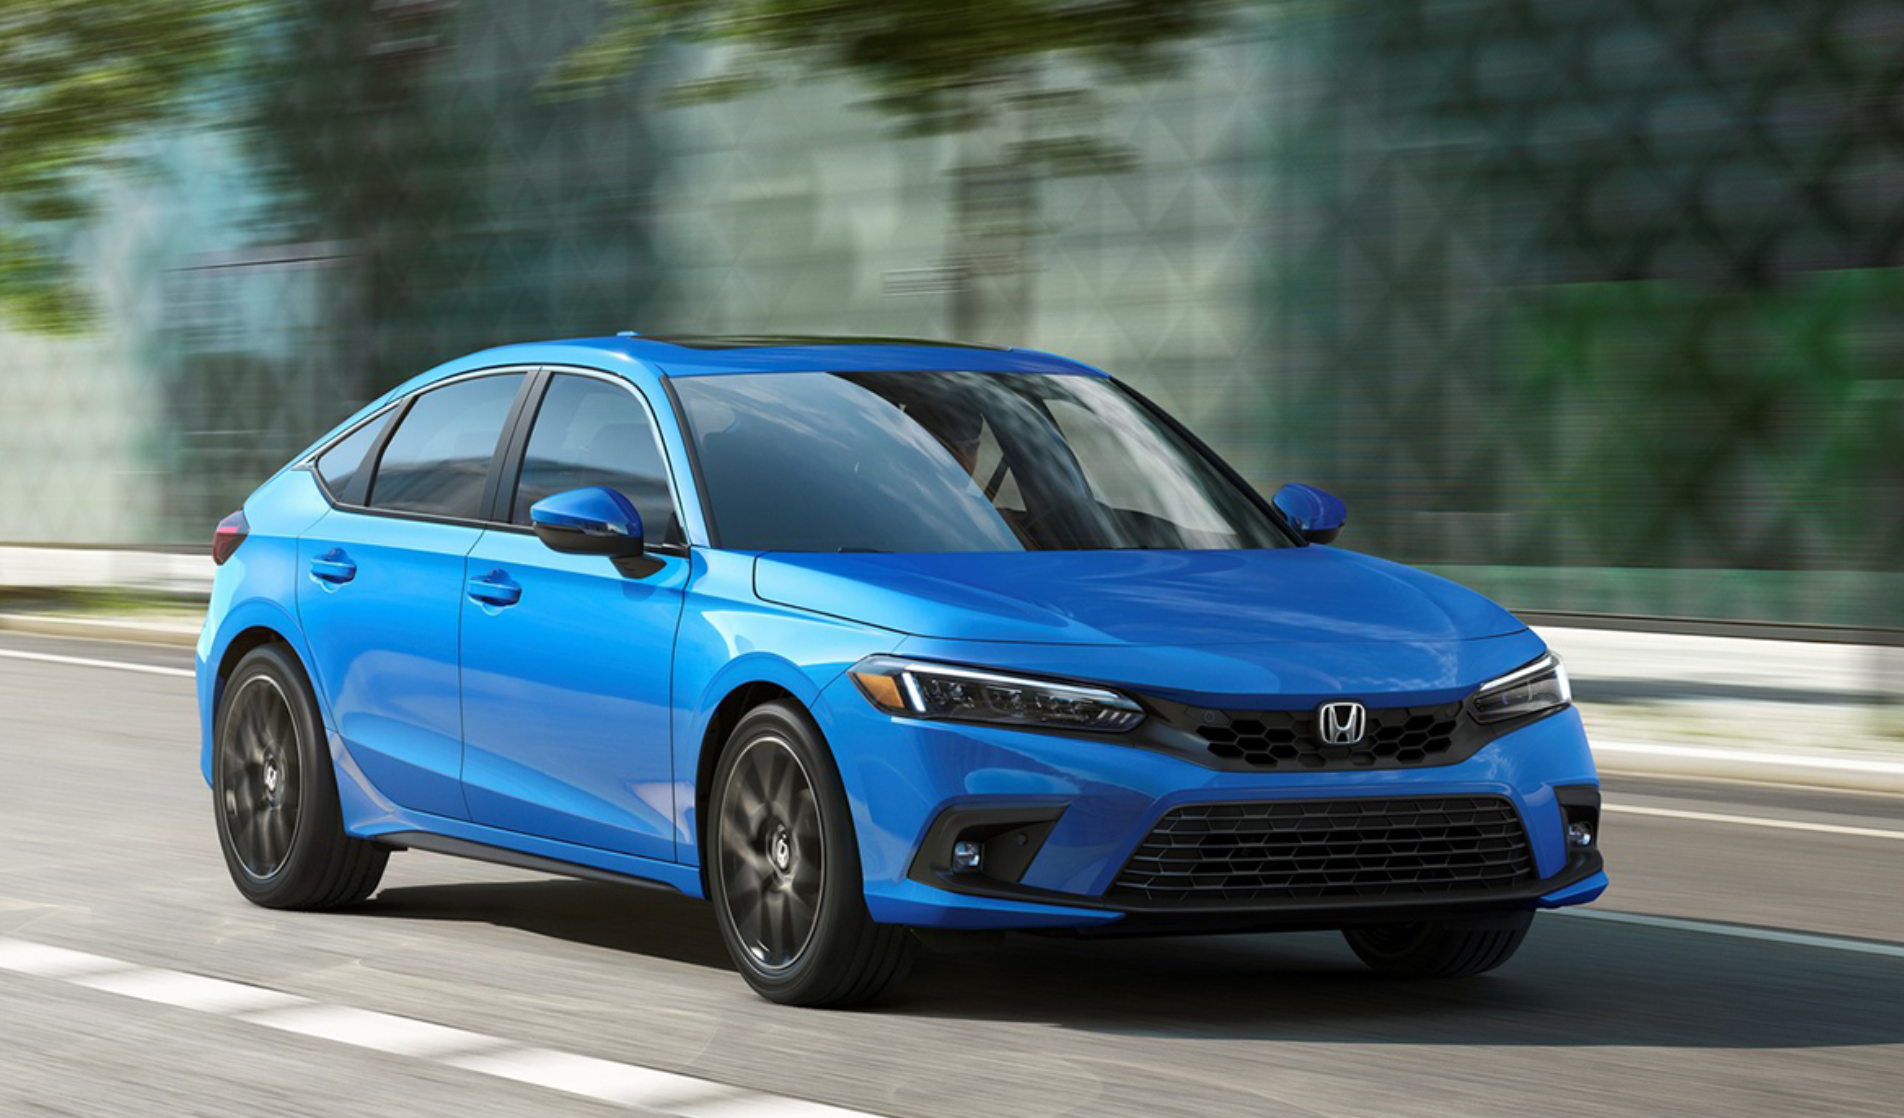 2022 Civic Hatchback Engine and Performance